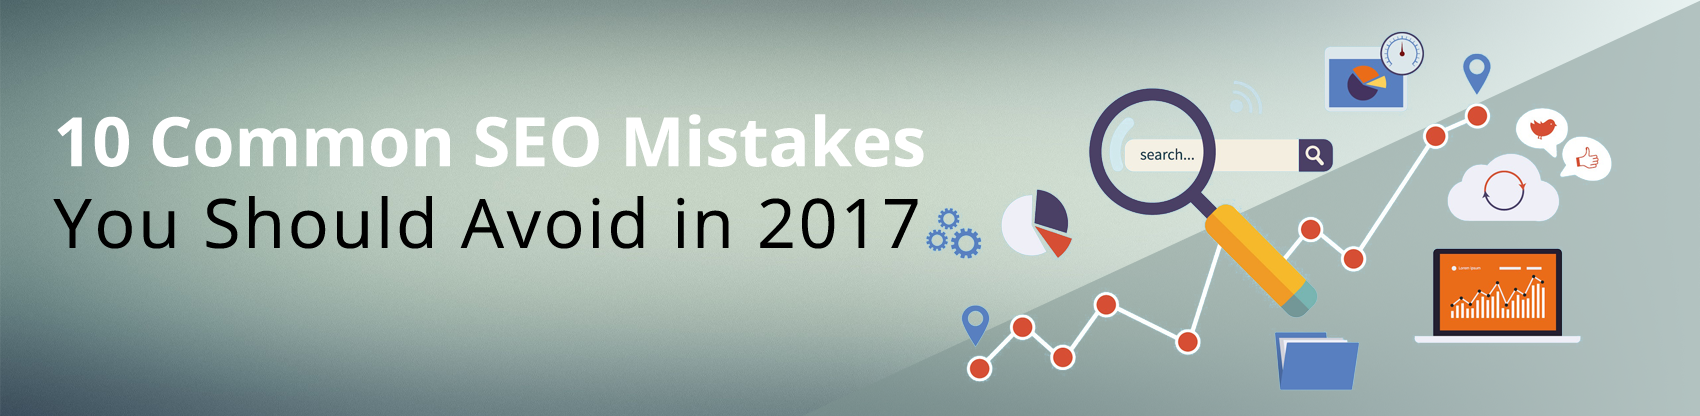 10 Common SEO Mistakes You Should Avoid in 2017